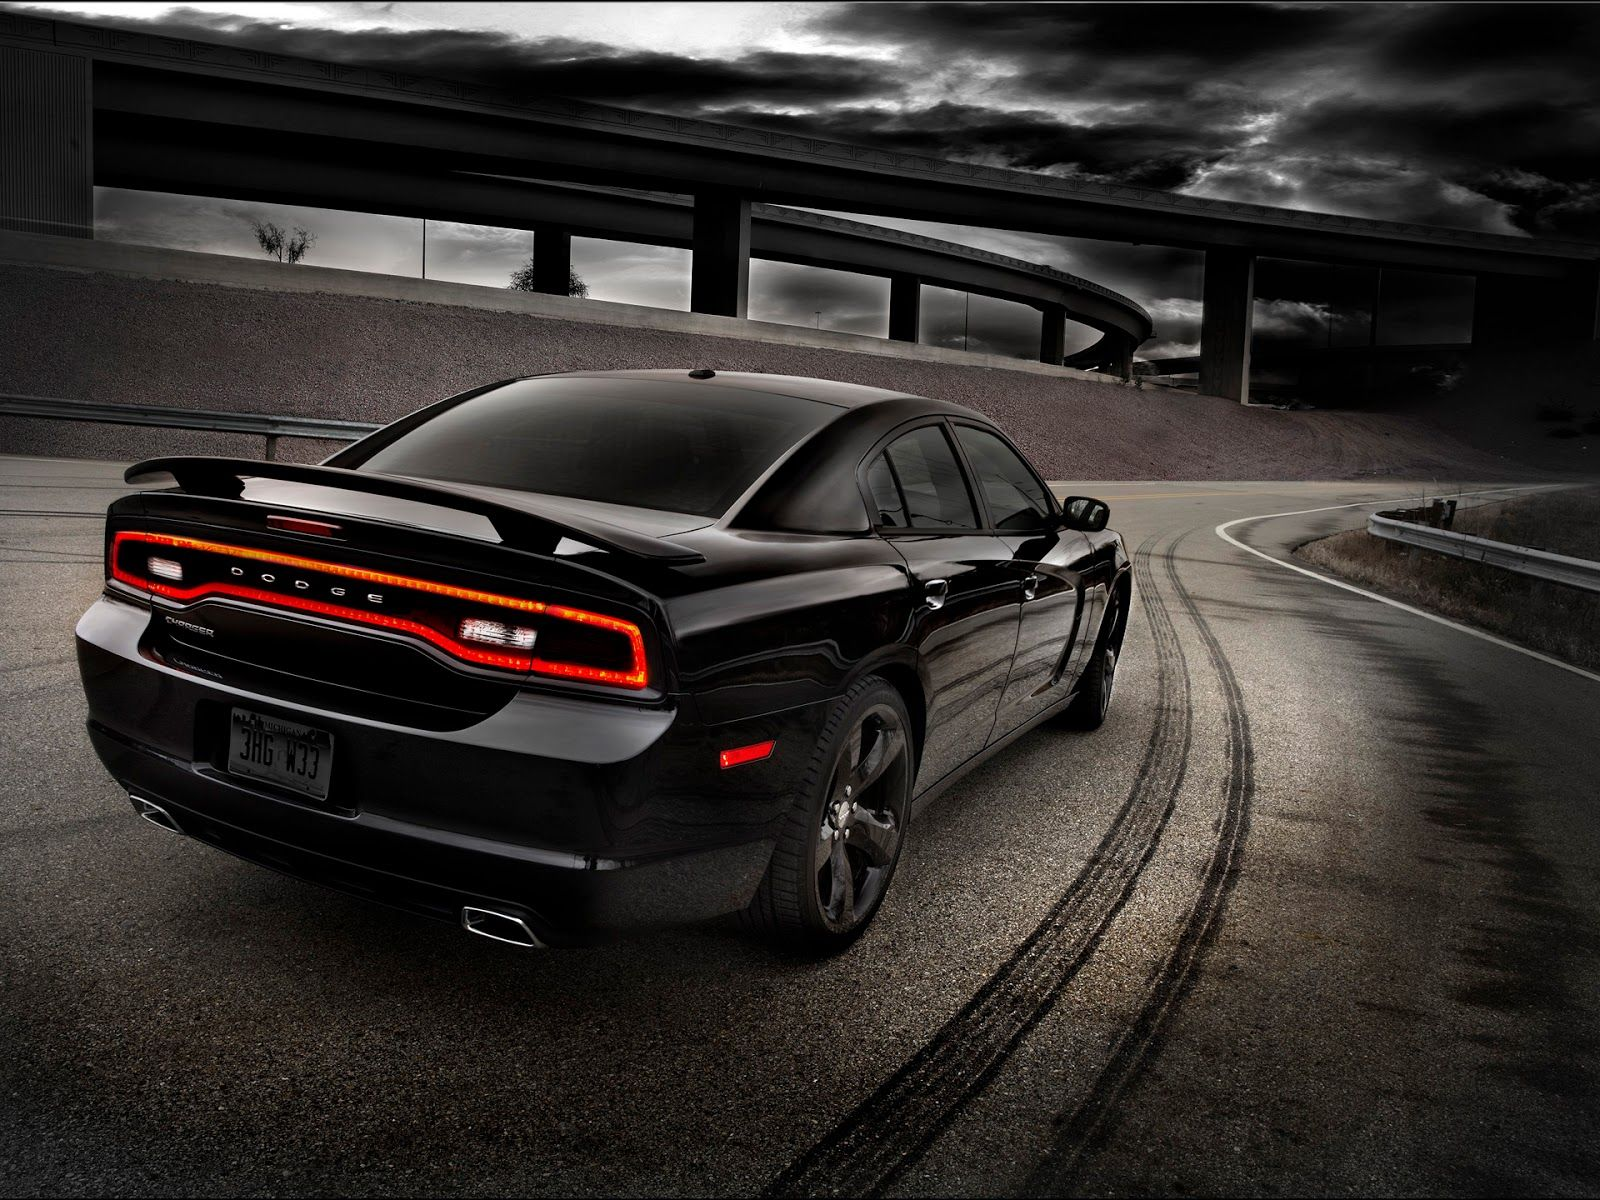 Dodge Charger Pursuit Pace Car Wallpapers And HD Images